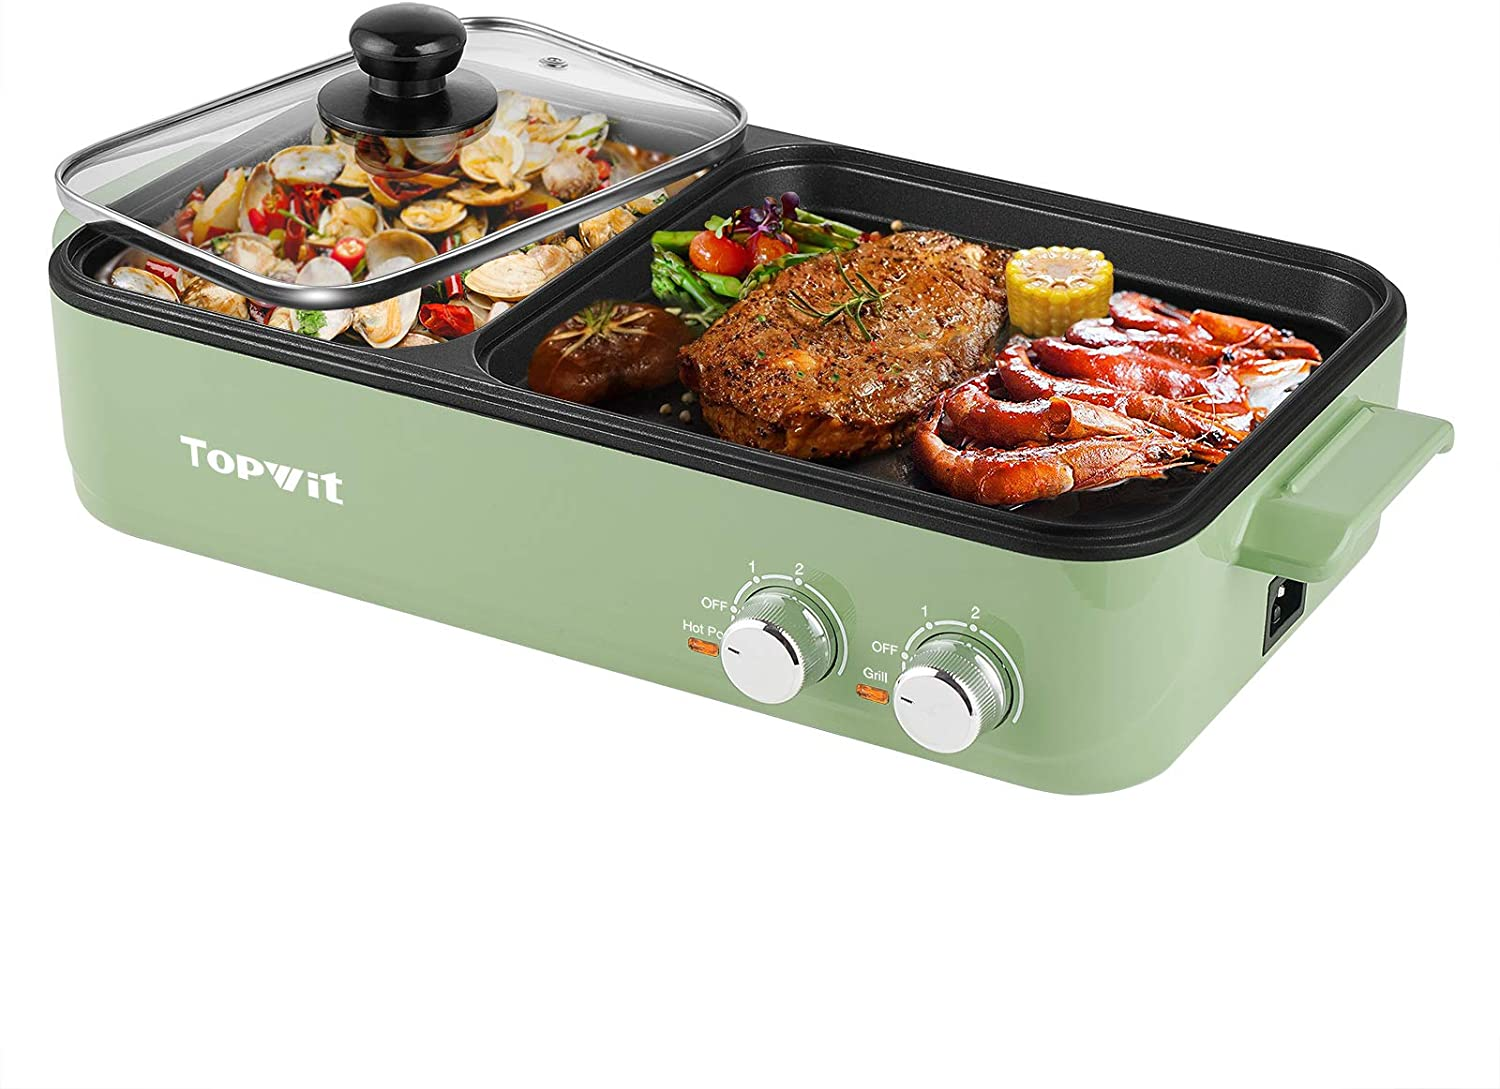 Topwit Electric Grill with Hot Pot 2 倉 Elec Non-Stick 割り引き Indoor 1 in